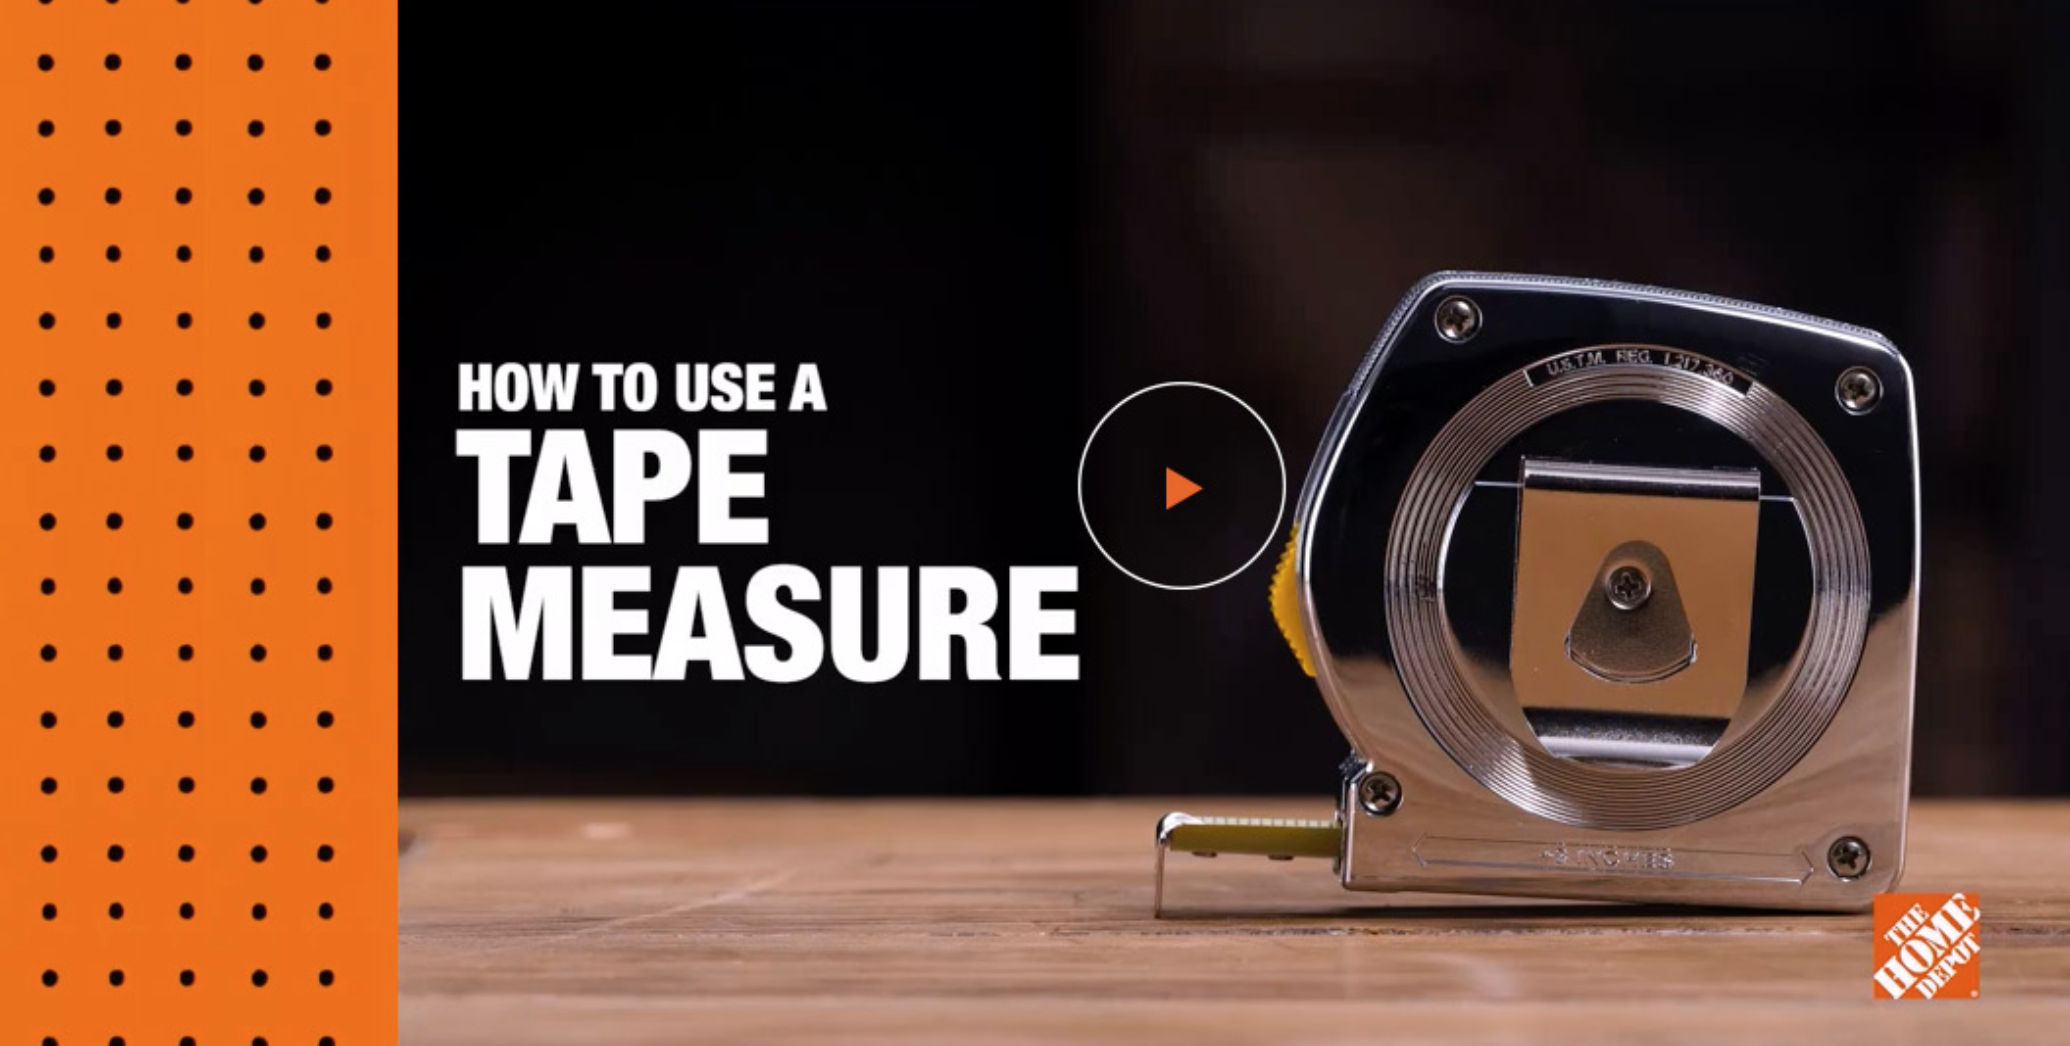 How to use a tape measure - video link from HomeDepot